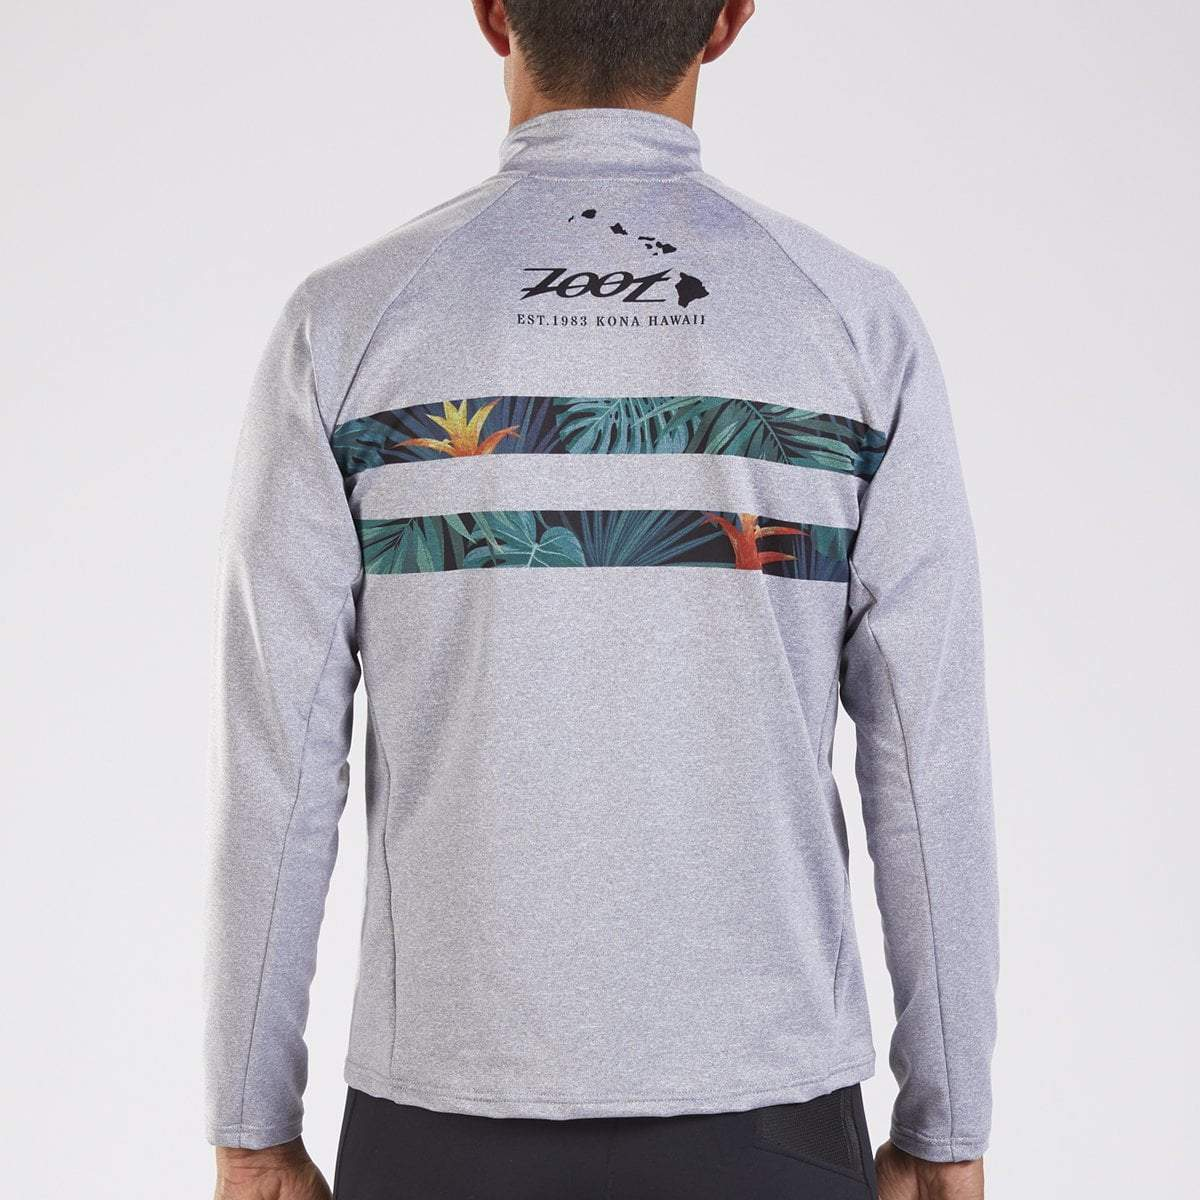 ZOOT MEN'S LTD HALF ZIP ALI'I 2018 BACK.jpg